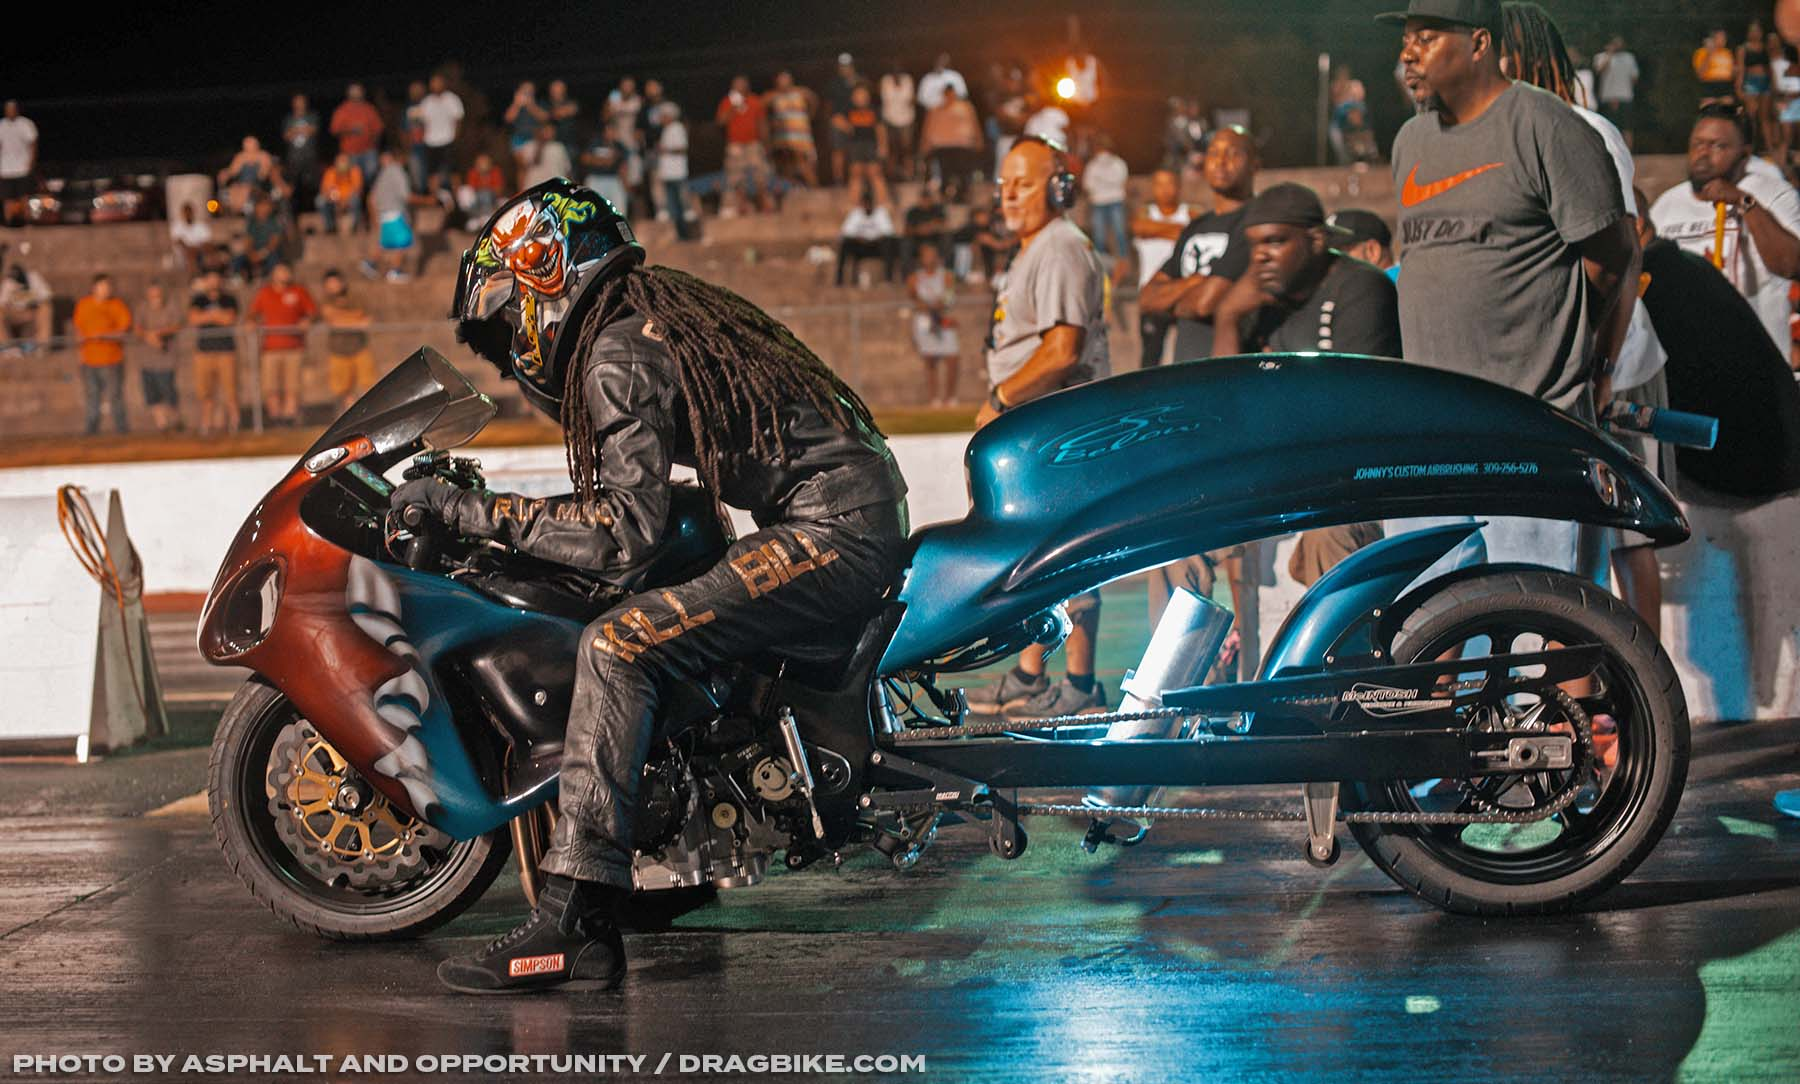 2020 Kings of Grudge Mega Fest at Union County Dragway